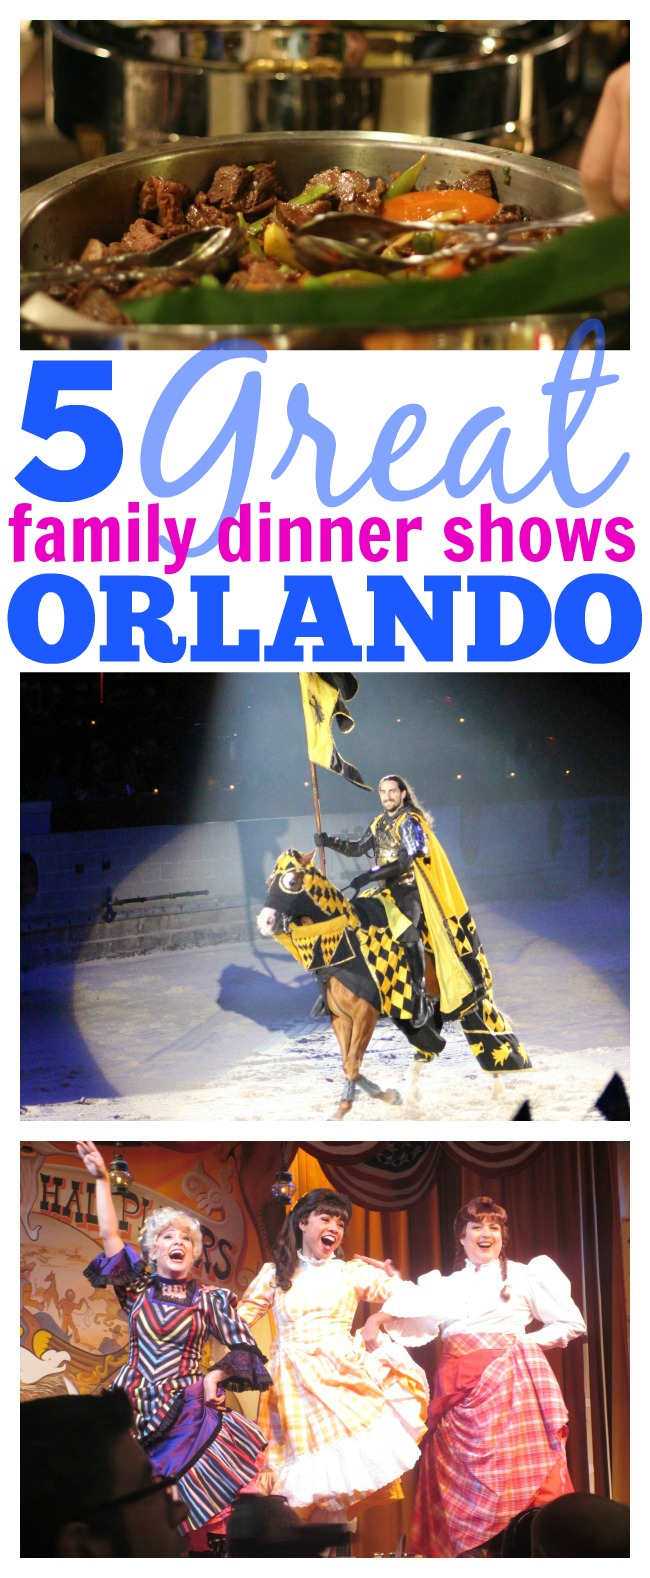 Great family dinner shows in Orlando